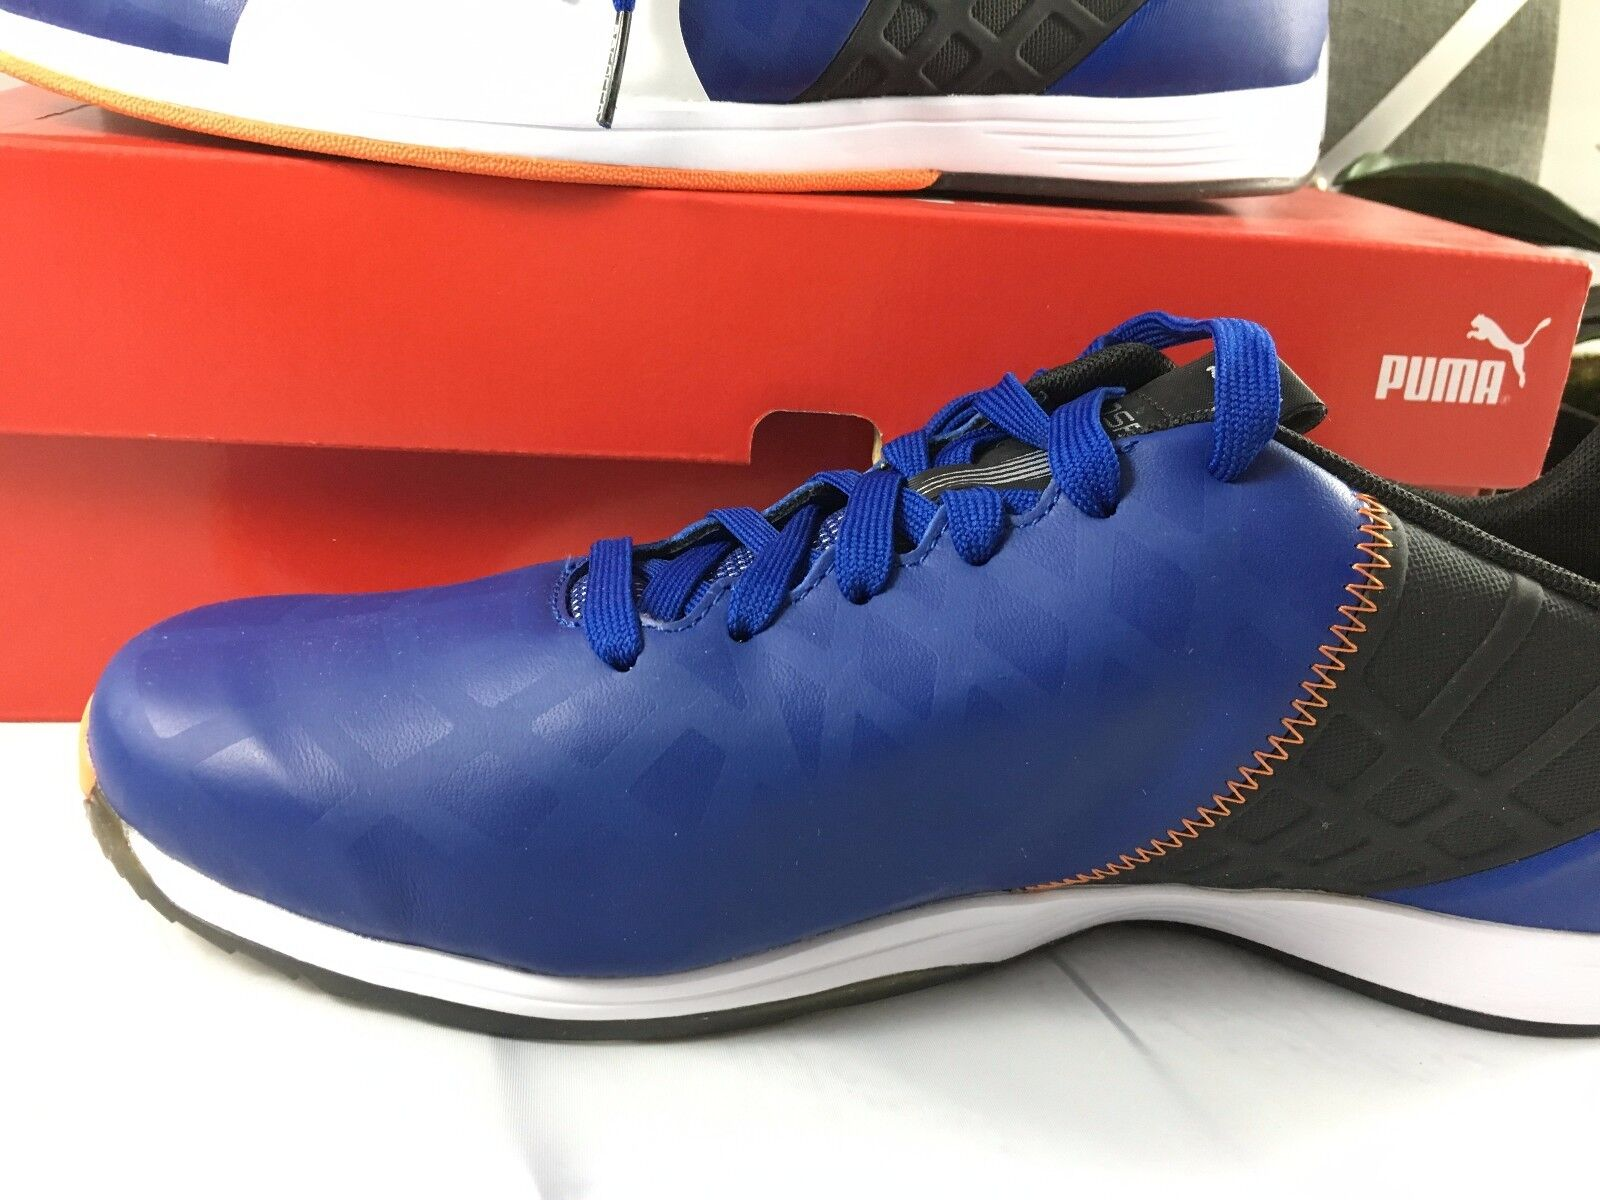 Muelle del puente tormenta Receptor  NEW in BOX PUMA evoSPEED 1.4 SF Men's Shoes sneakers RED 305555 02 PUMA  Suede Series Athletic Shoes for Men Clothing, Shoes & Accessories